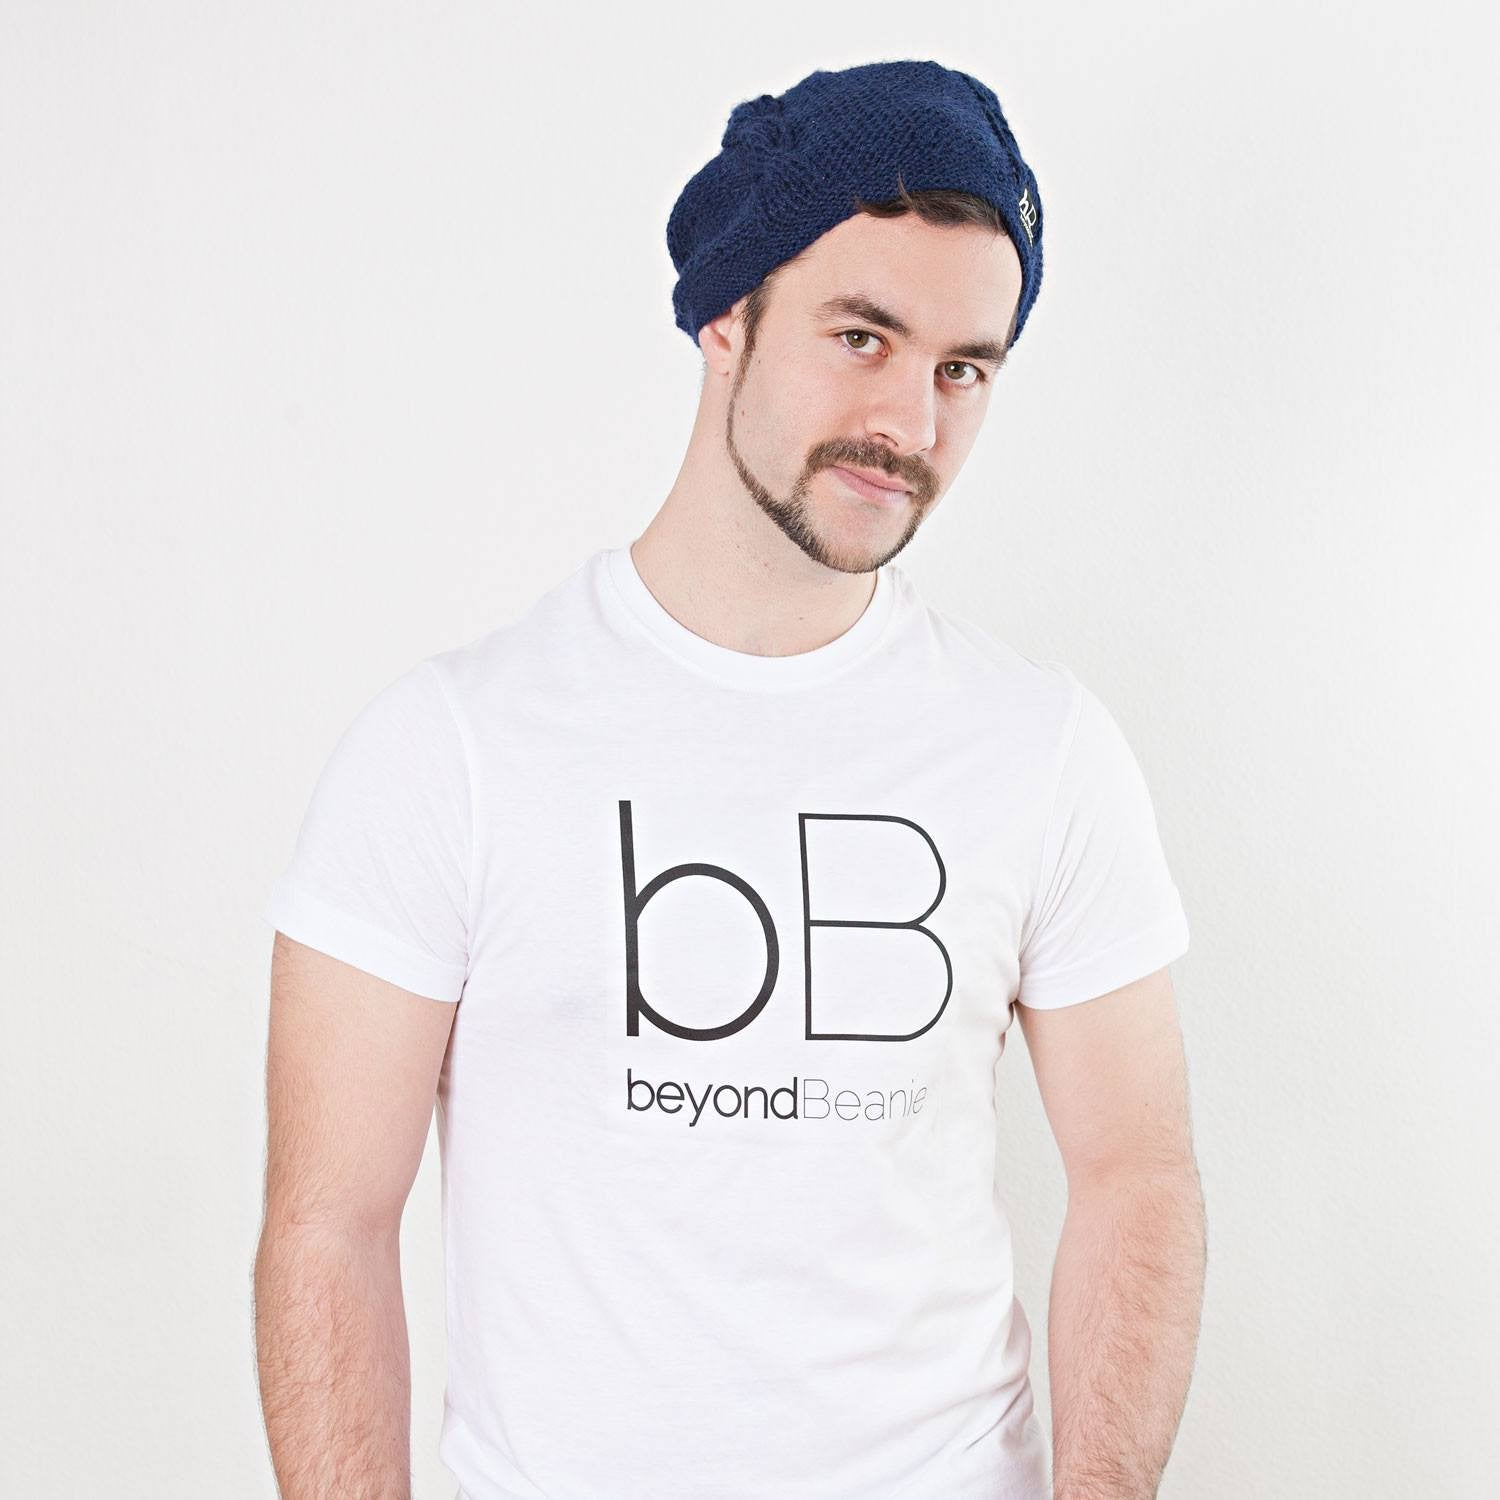 fea11f8d8bd Blue Charm Beanies for men and women - beyondBeanie